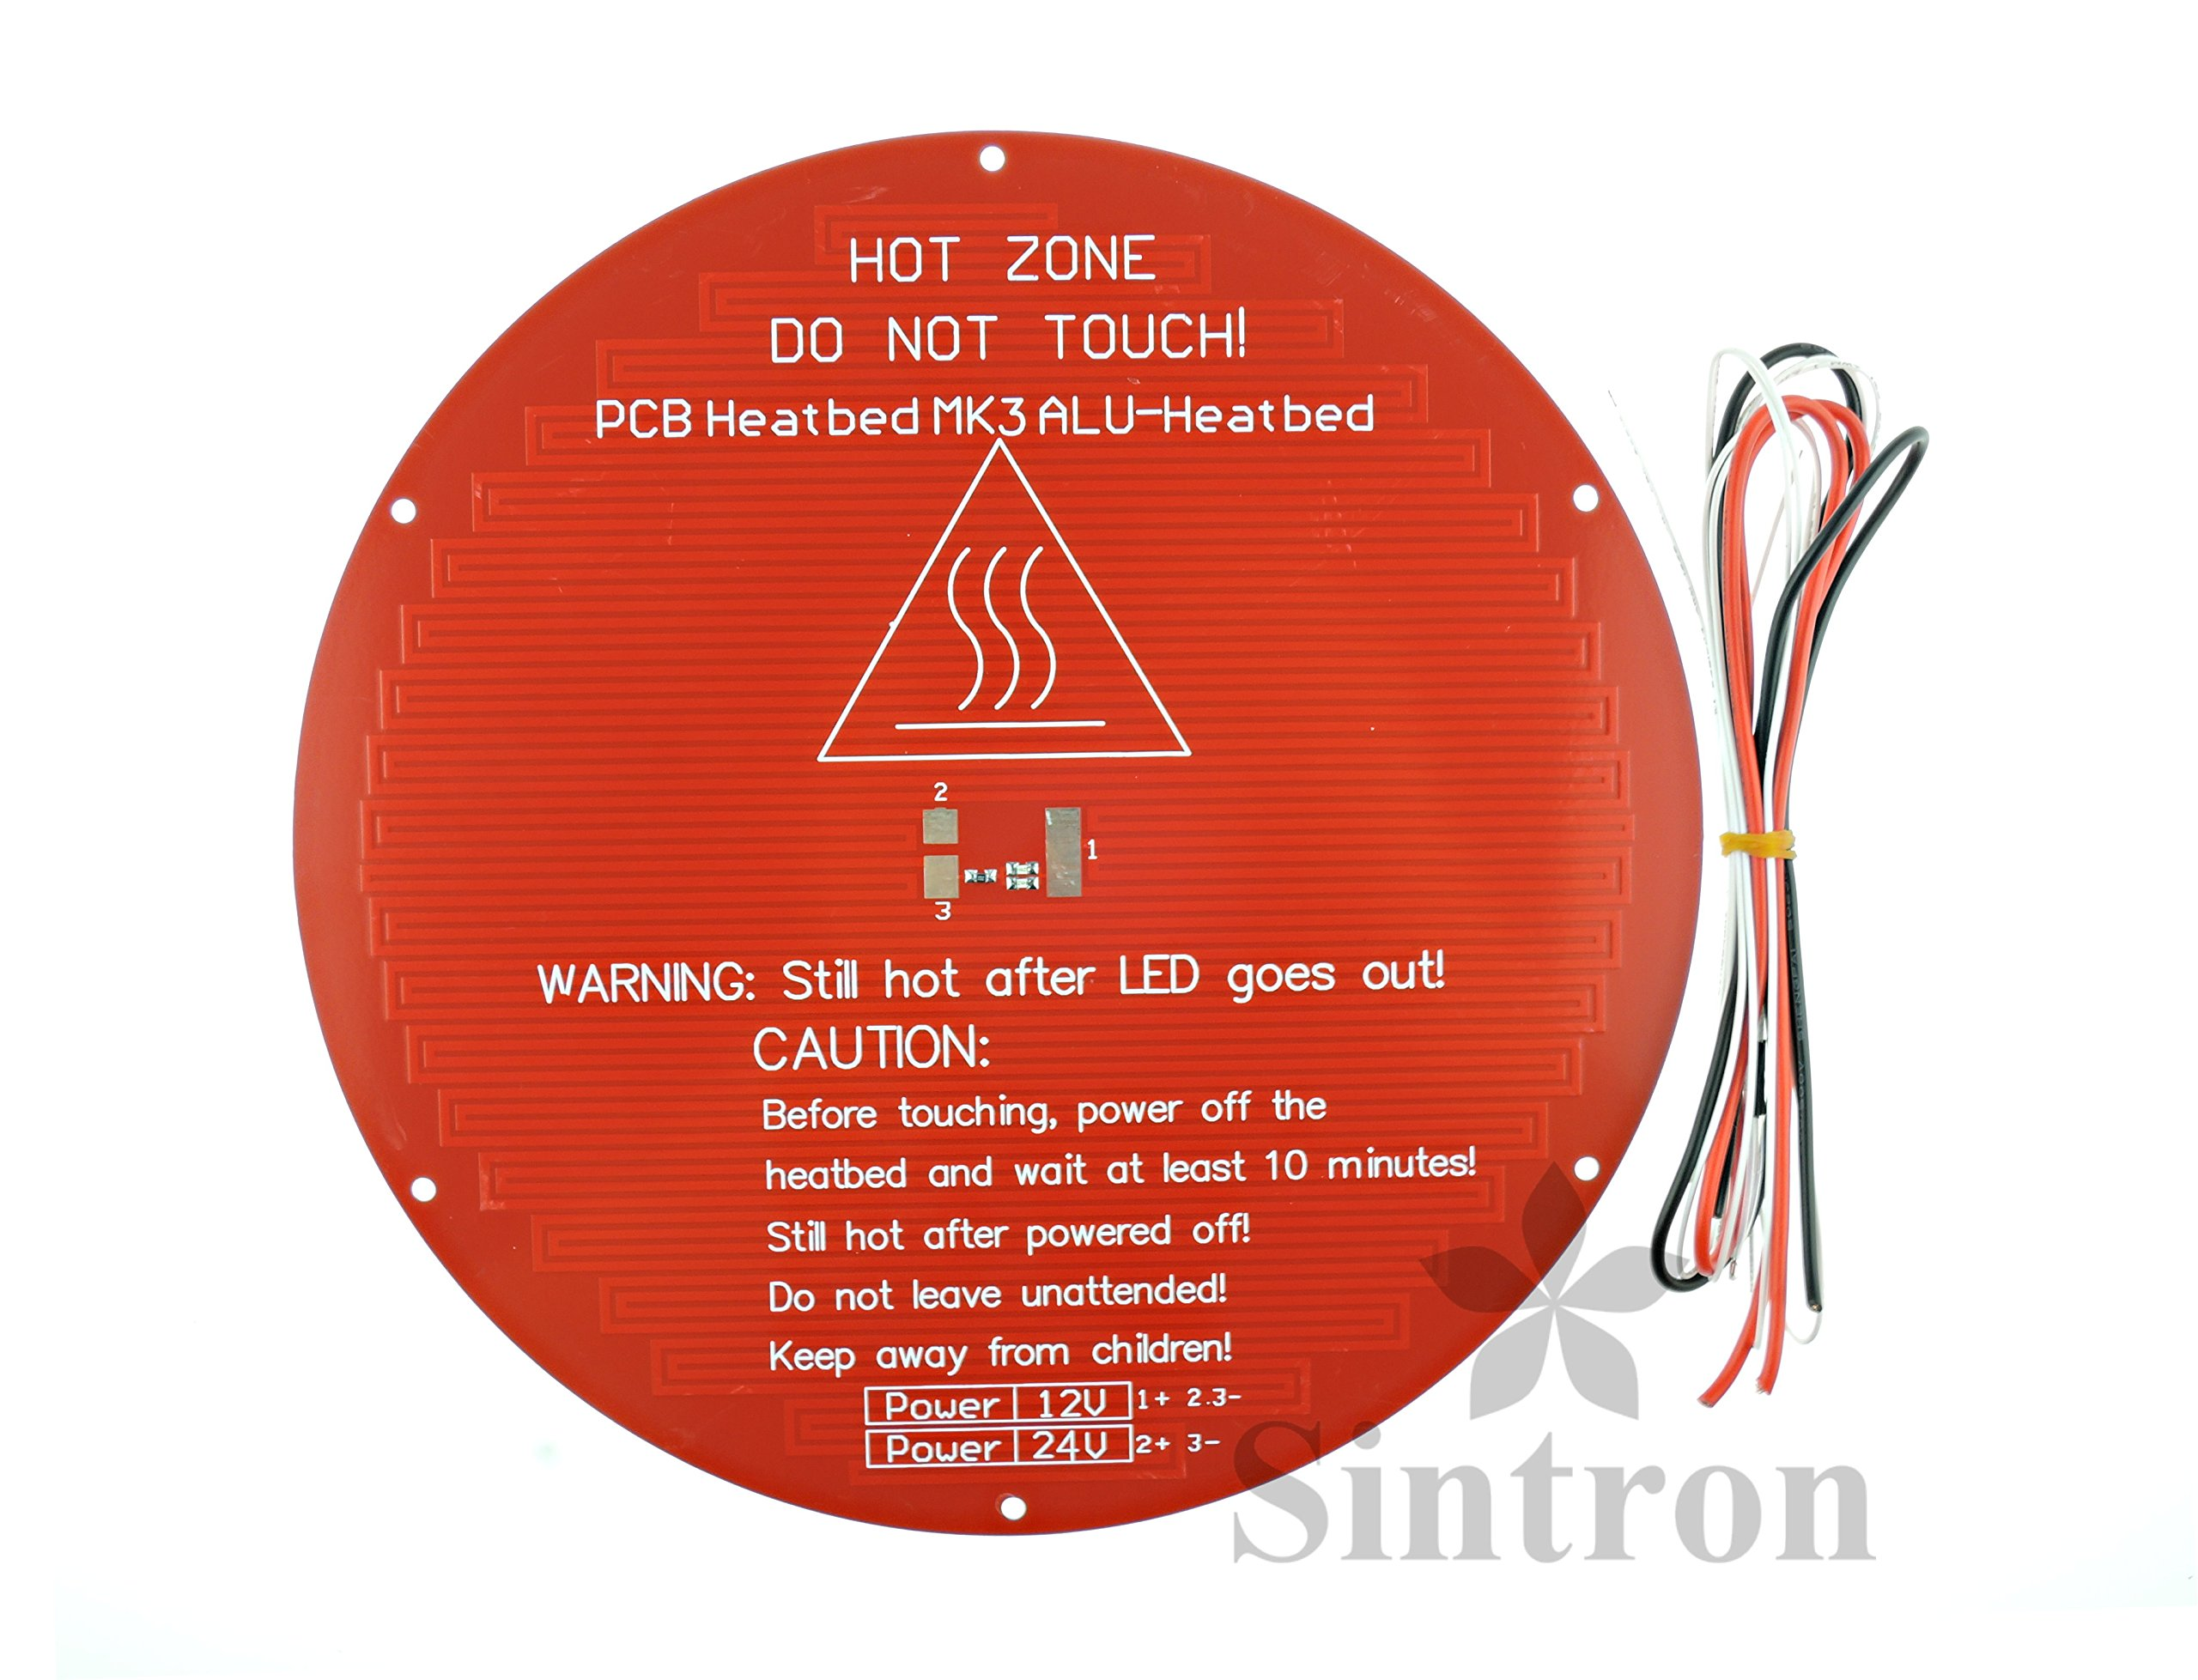 [Sintron] 3D Printer Heatbed Round 3mm Aluminum MK3 Heated Bed for RepRap Rostock Delta Kossel Mini with Thermistor & Wire